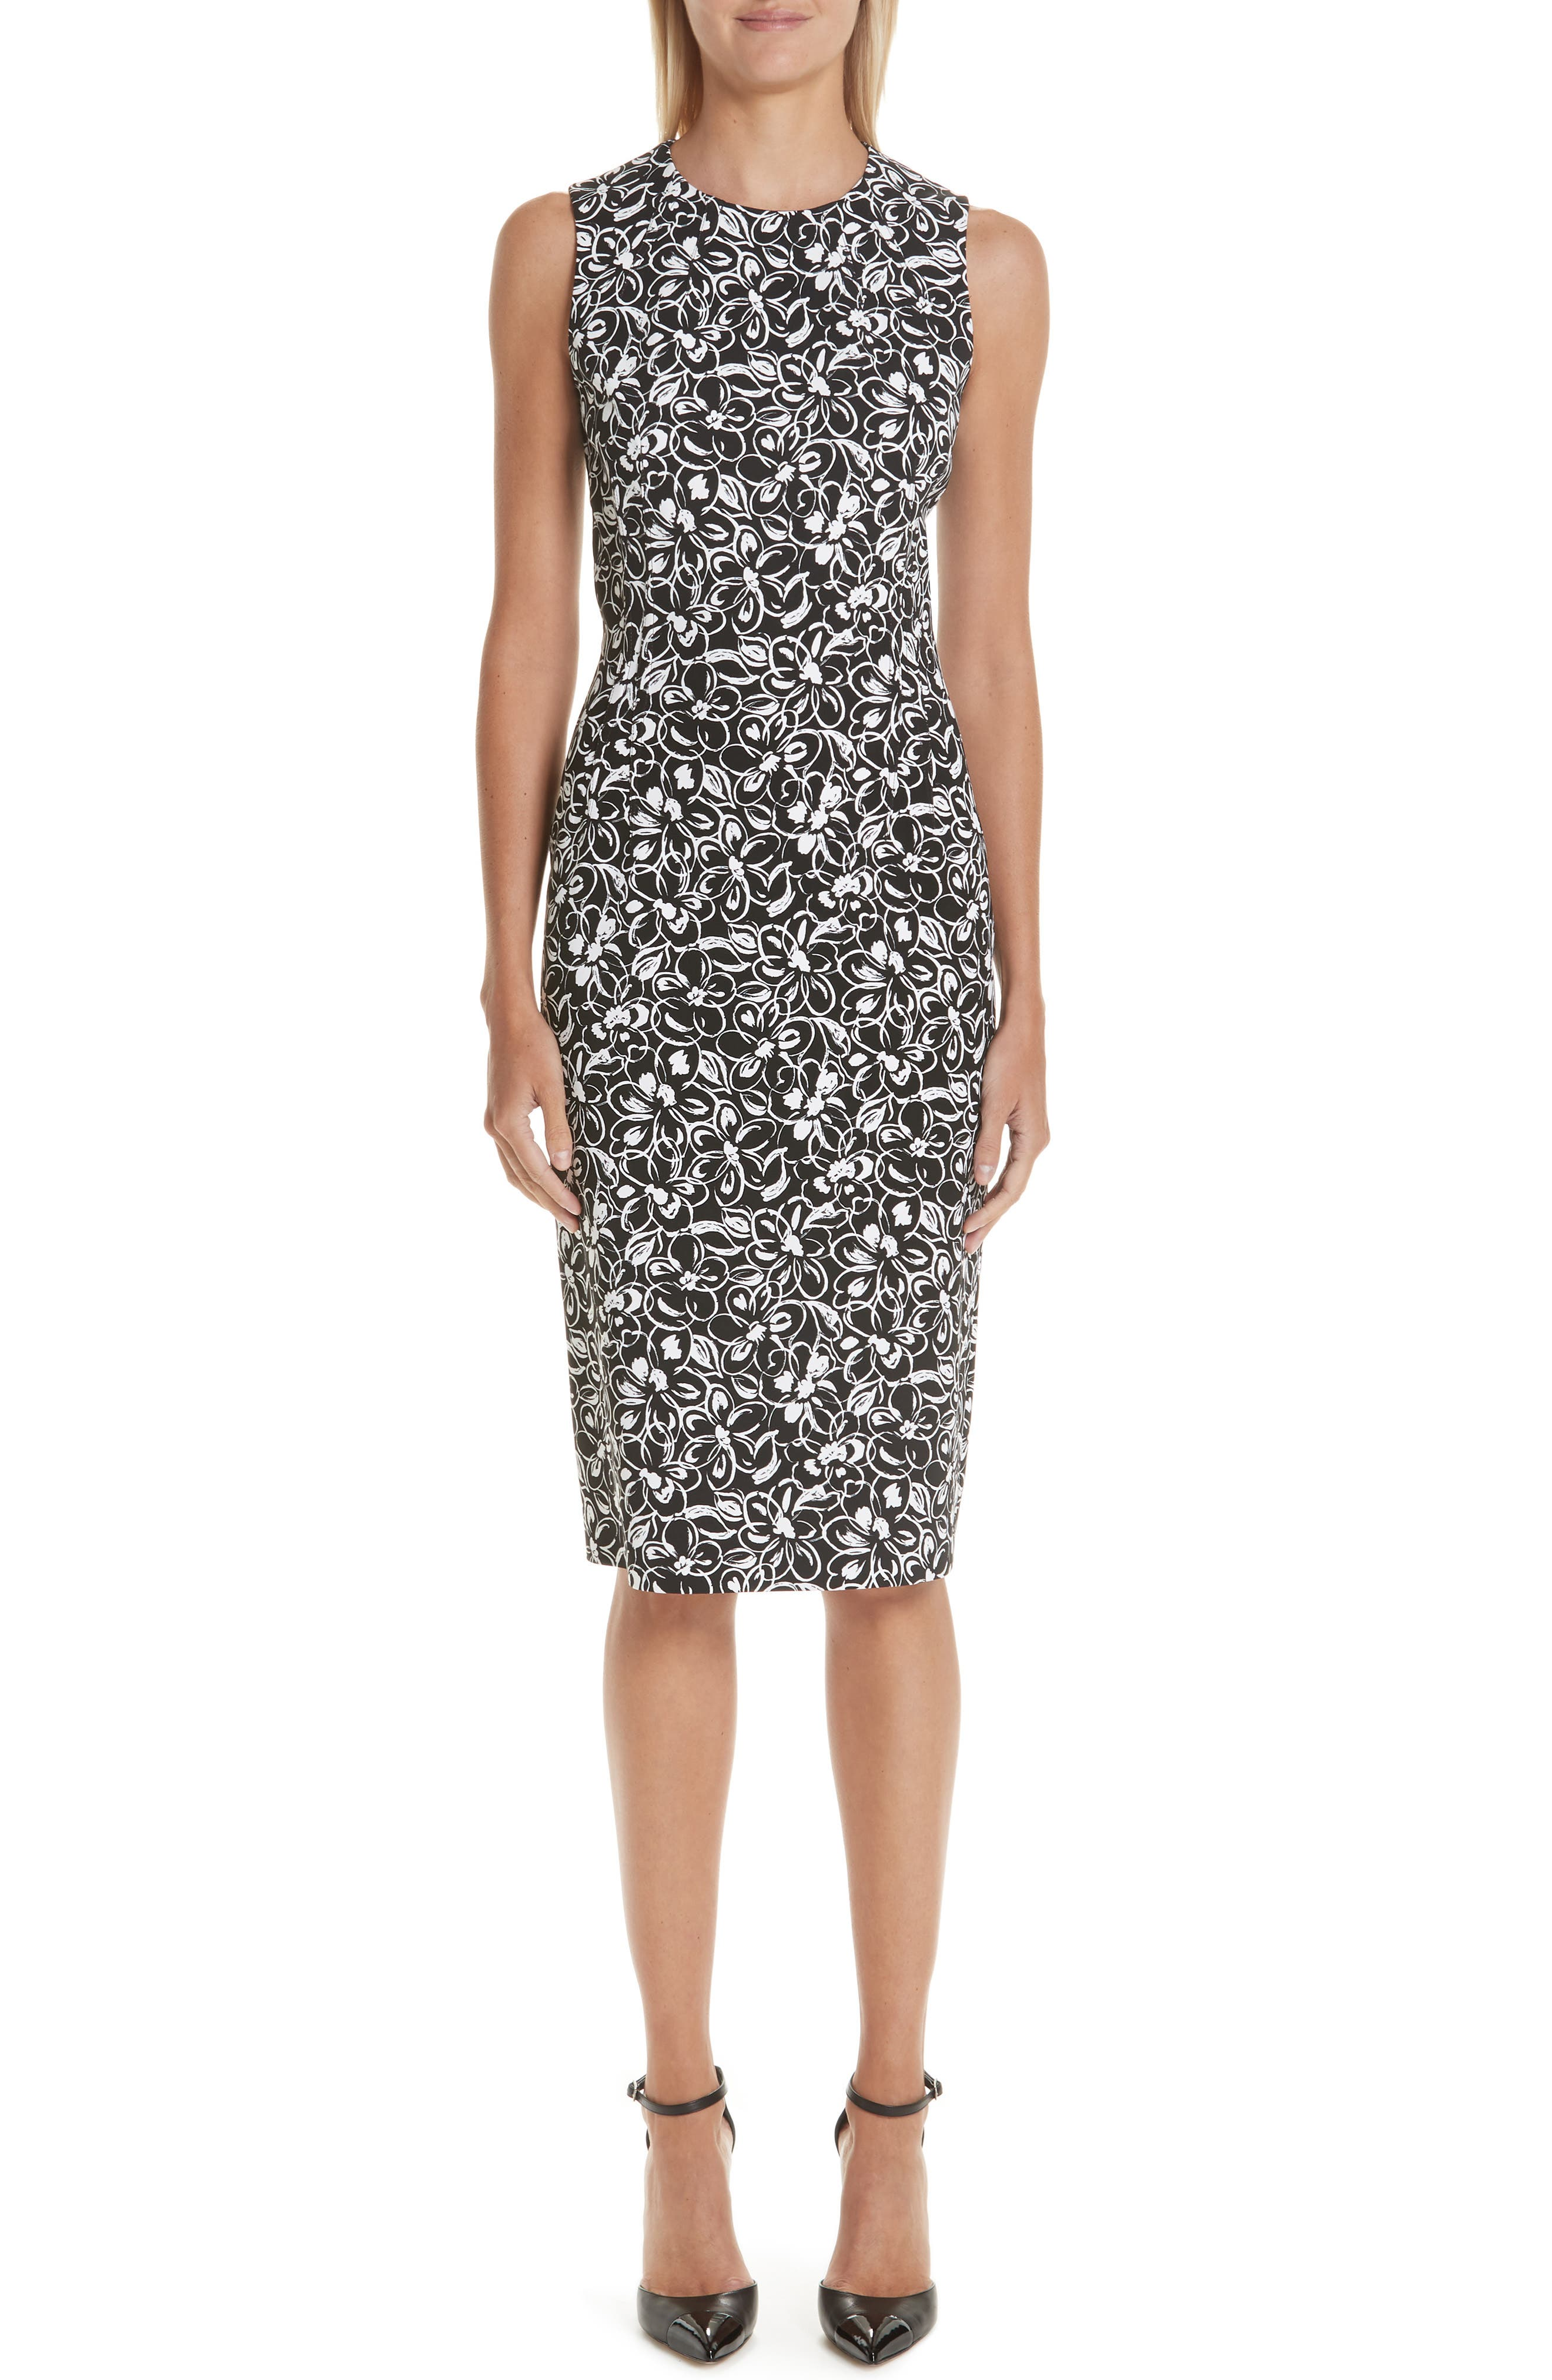 Michael Kors Painterly Floral Stretch Cady Sheath Dress, Black